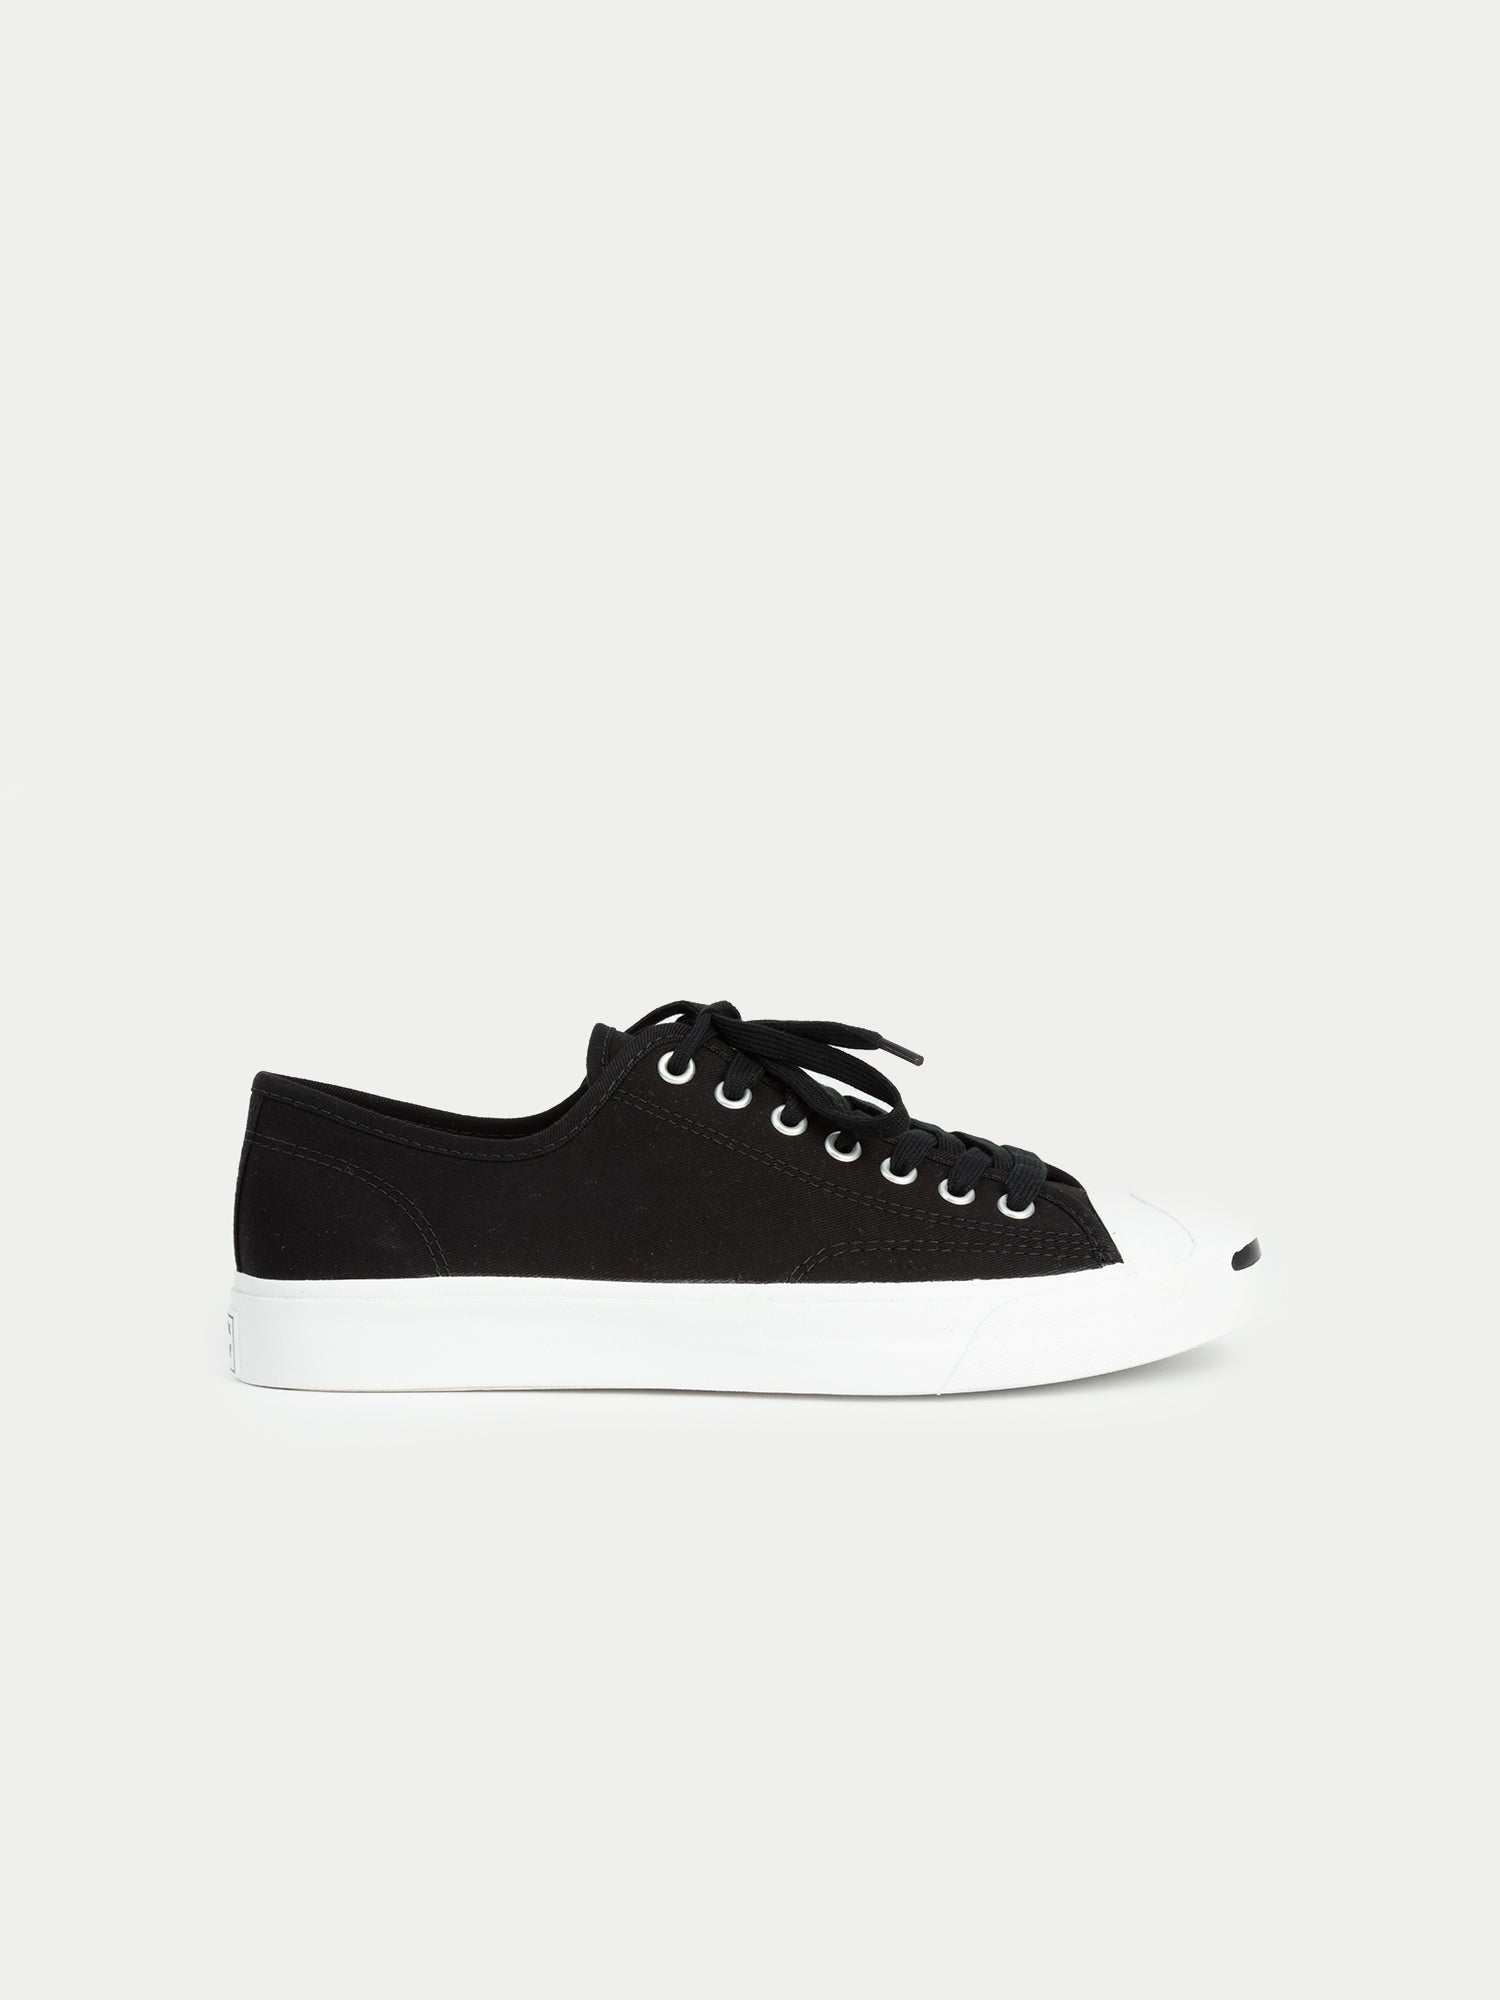 Converse Jack Purcell Ox (Black) 1